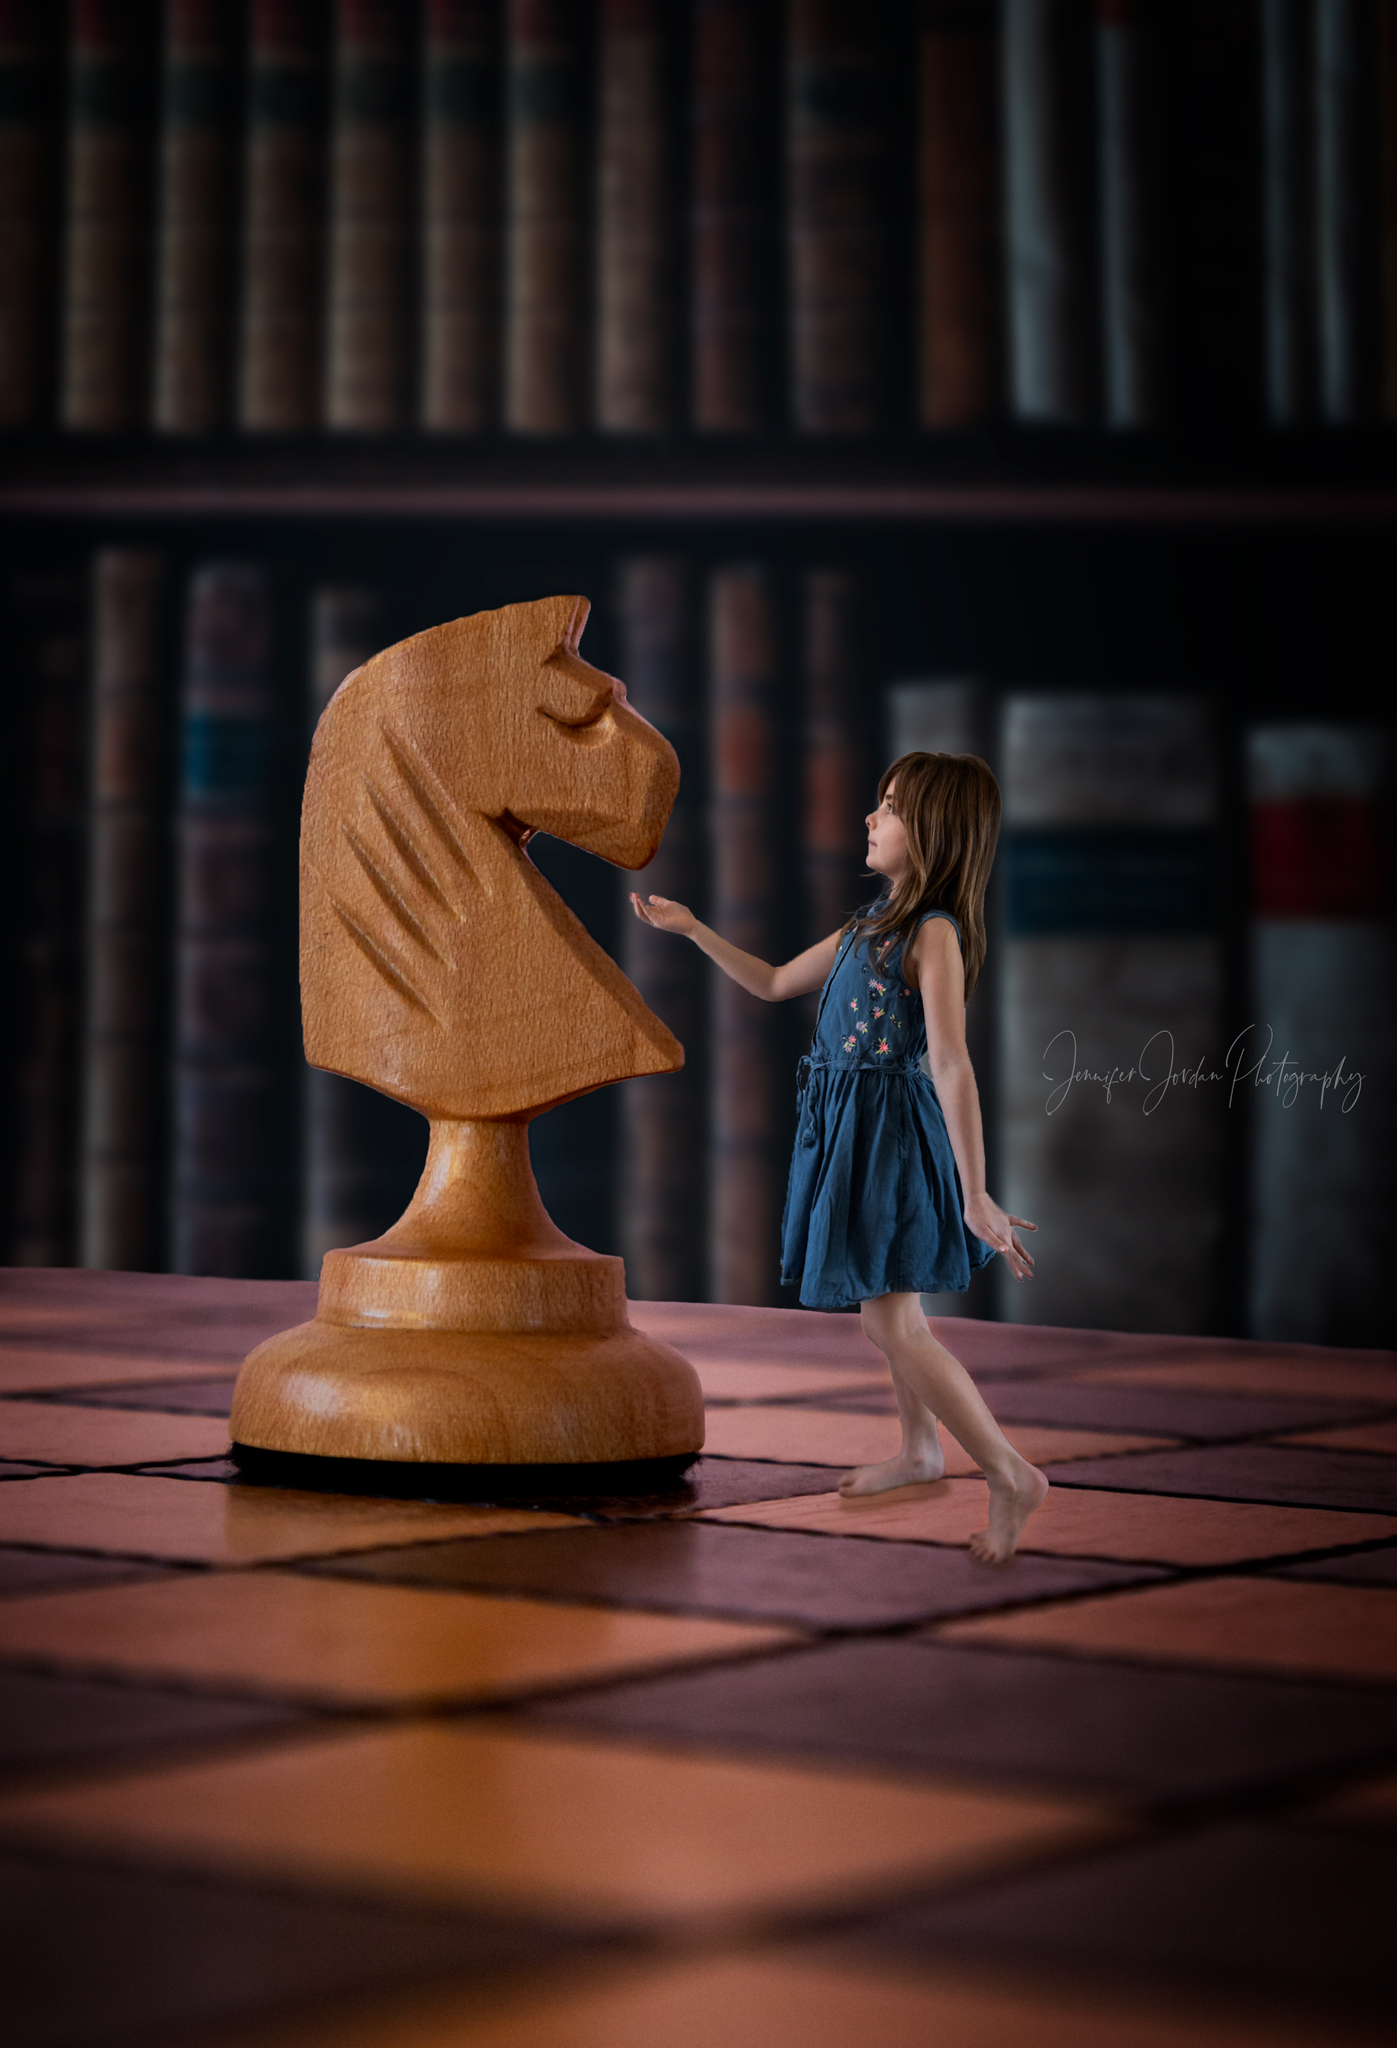 Creative imagery by Jennifer Jordan Photograph. Little girl reaches out to knight chess piece.